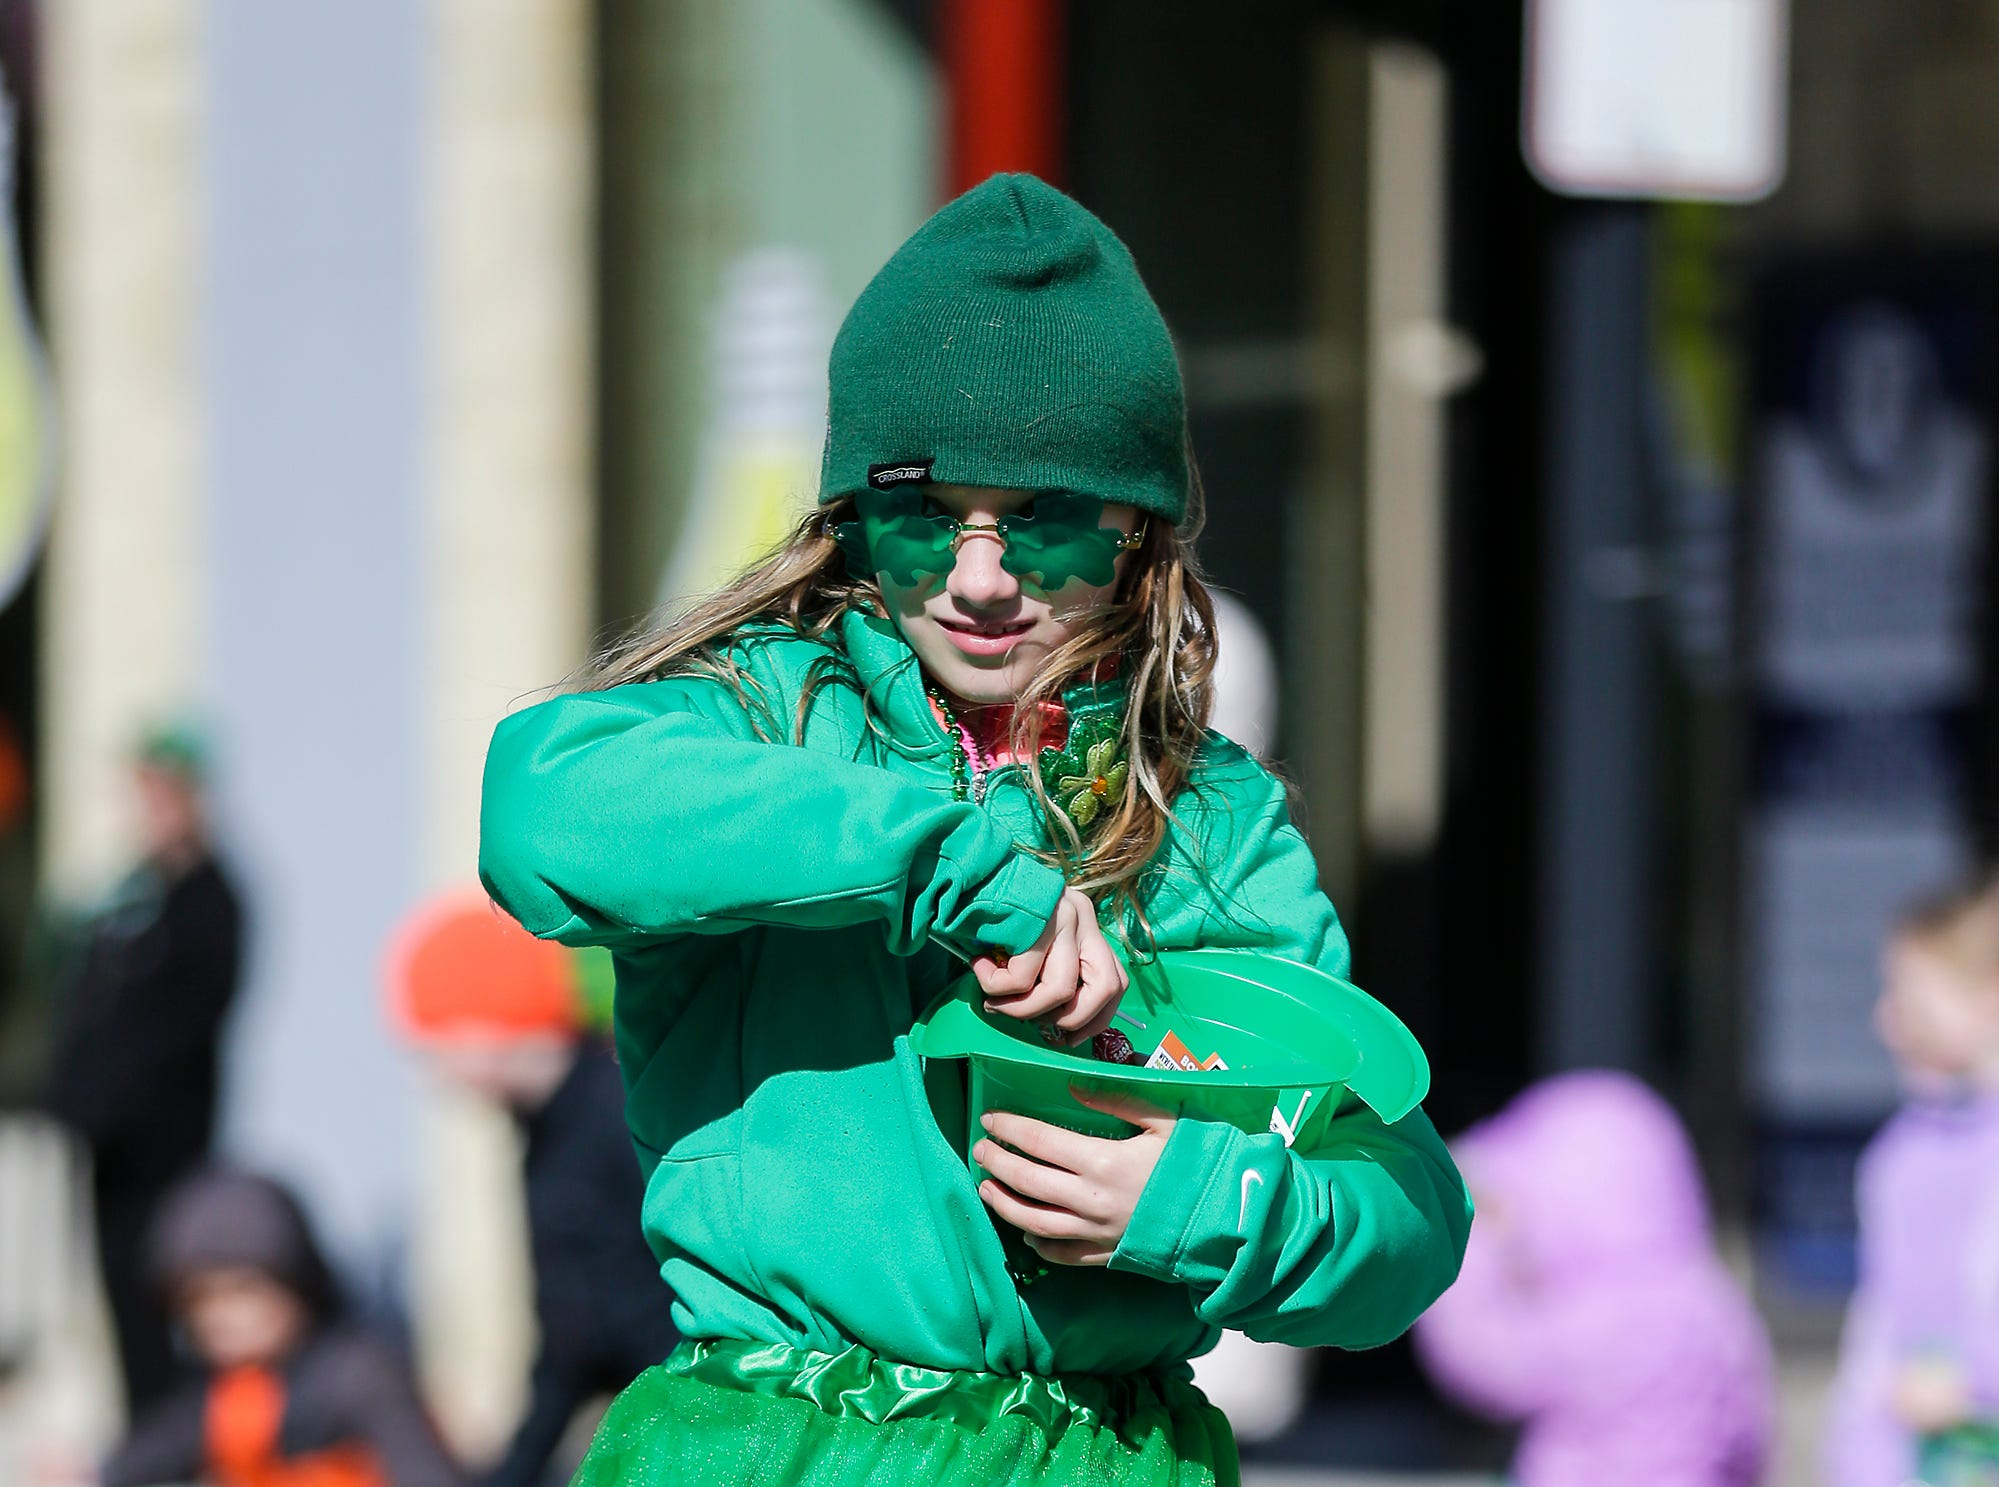 Sophia Deleon of Fond du Lac hands out candy in the City of Fond du Lac St. Patrick's Day Parade Saturday, March 16, 2019 on Main Street in downtown Fond du Lac. Hundreds of people lined the street to watch over 50 parade participants. Doug Raflik/USA TODAY NETWORK-Wisconsin